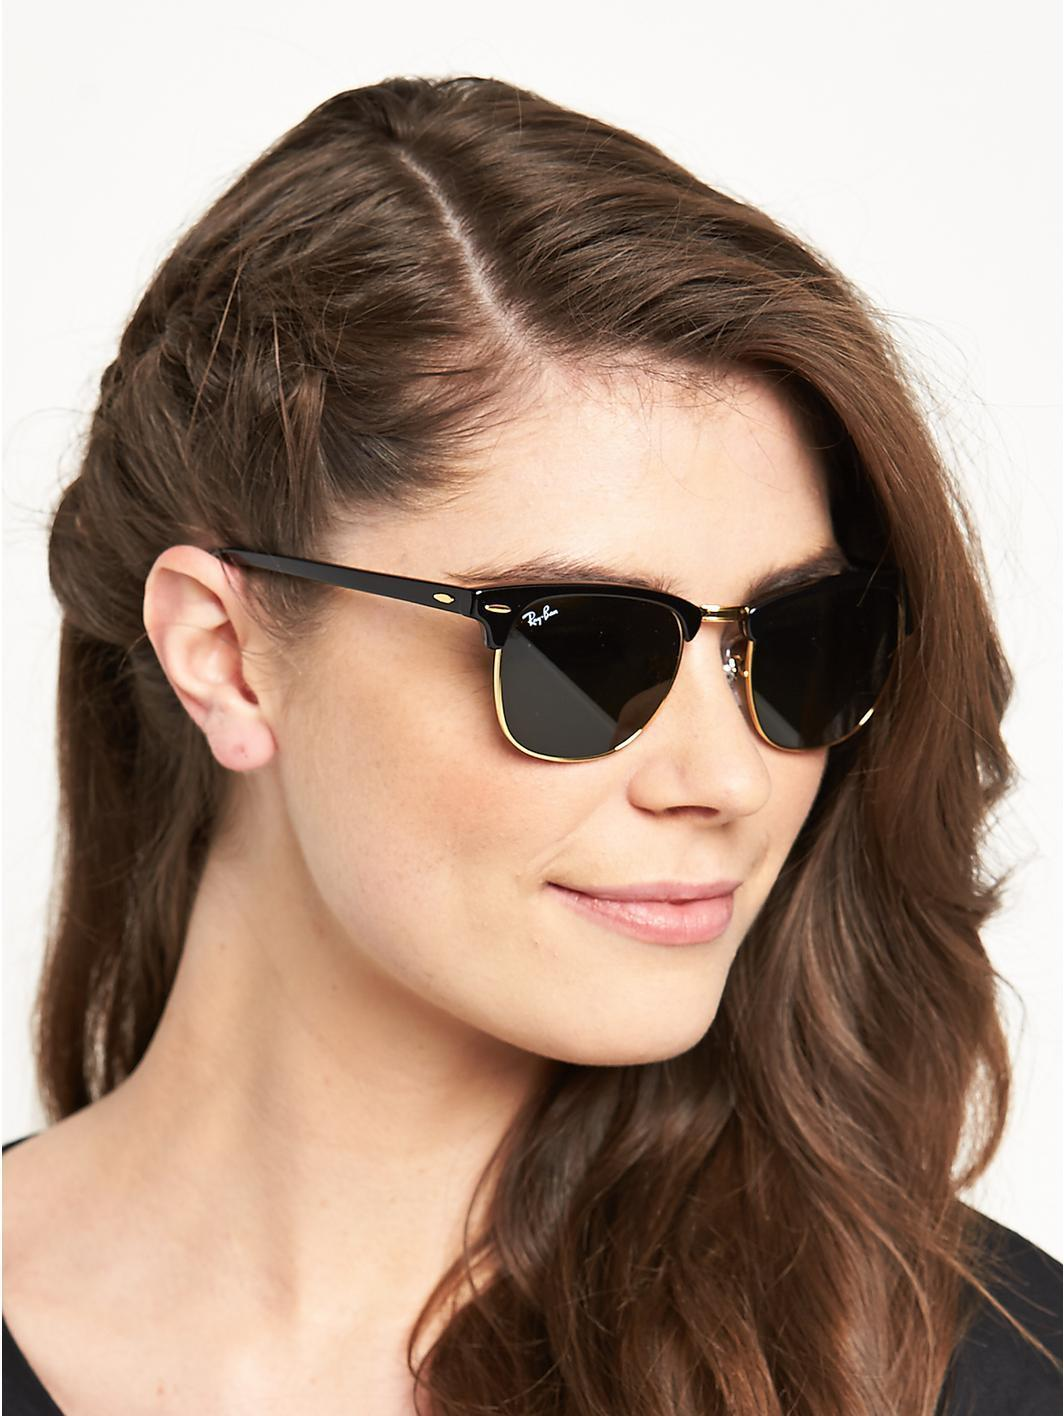 ray ban rb3016 classic clubmaster sunglasses mus2  Ray-Ban Ray-Ban Clubmaster Classic RB3016 W0365 Unisex Sunglasses